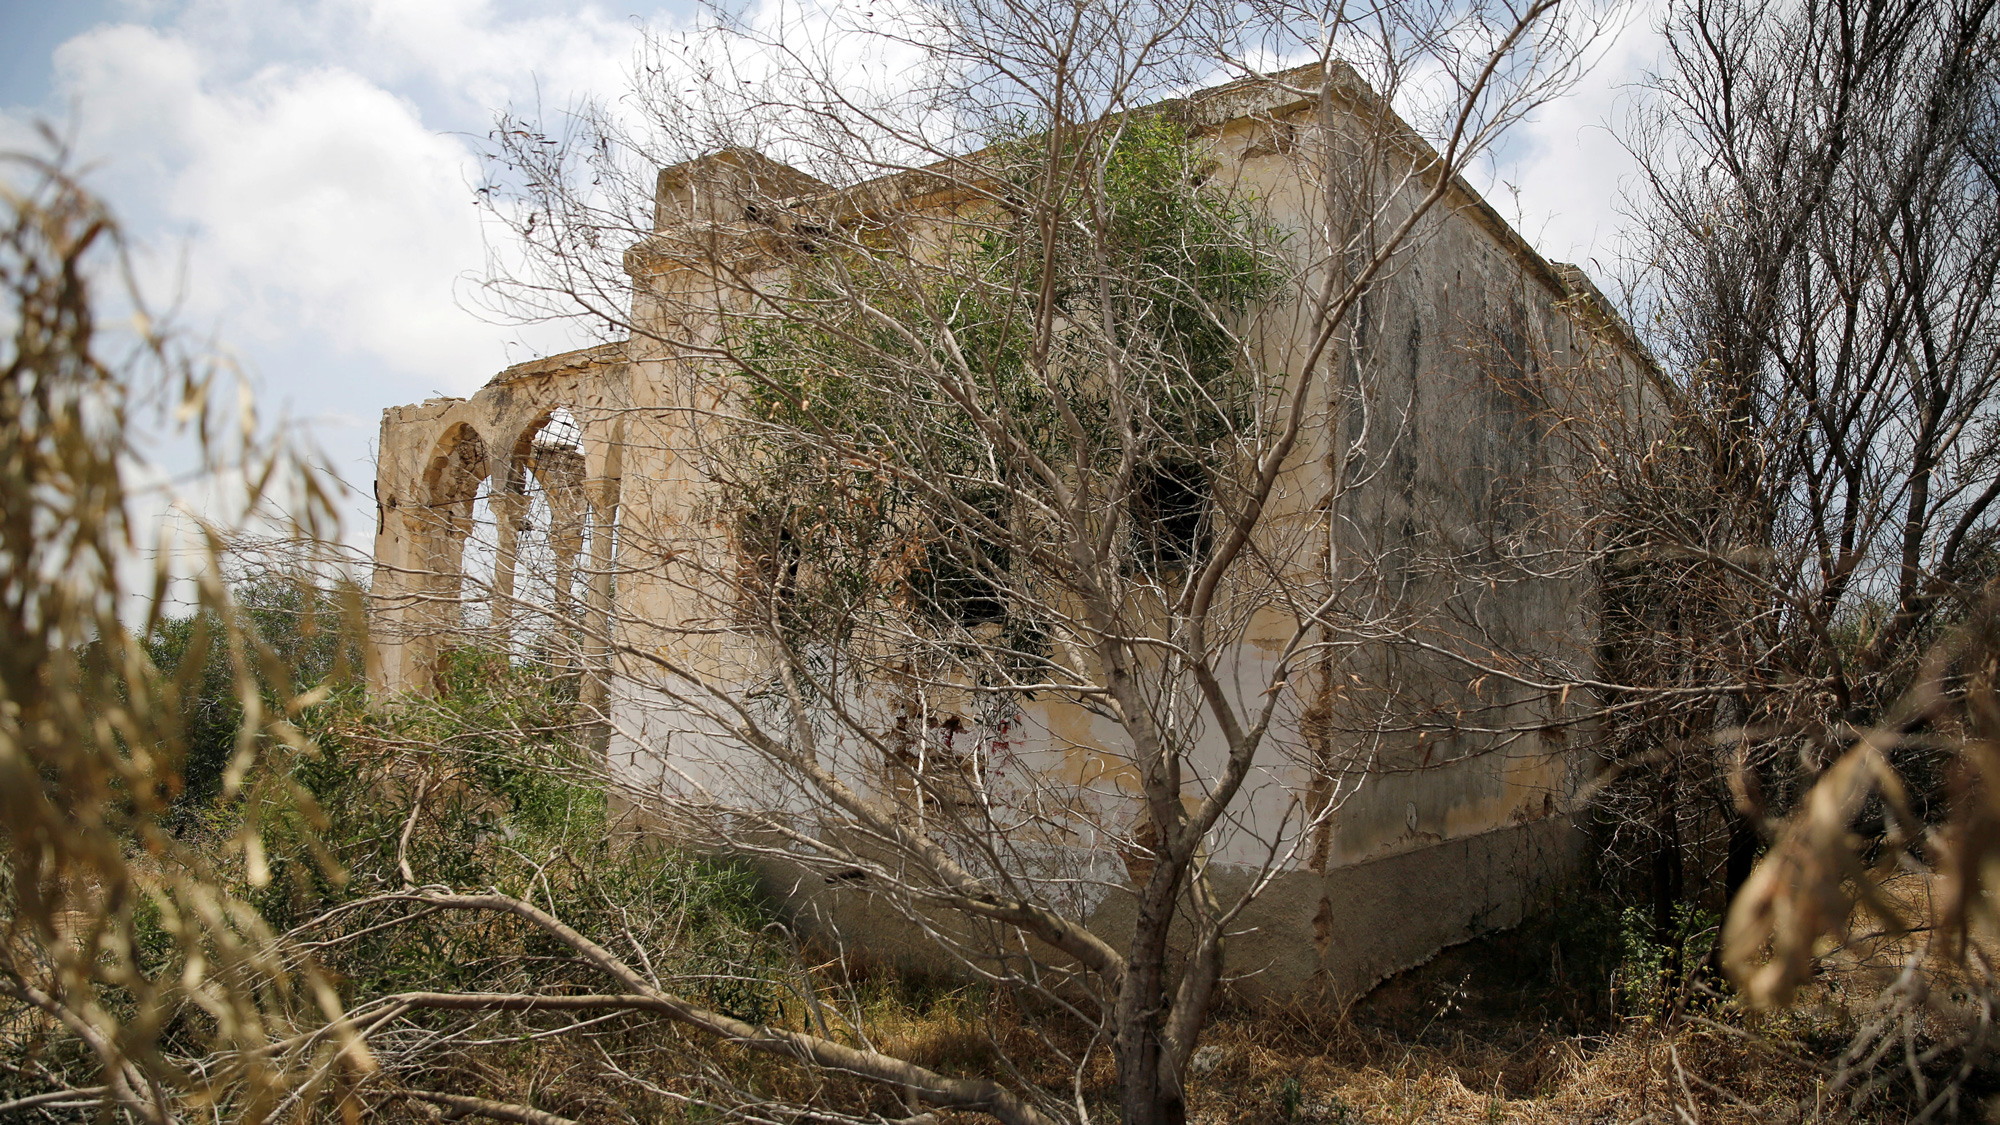 A stone building is crumbling and surrounded by tree branches